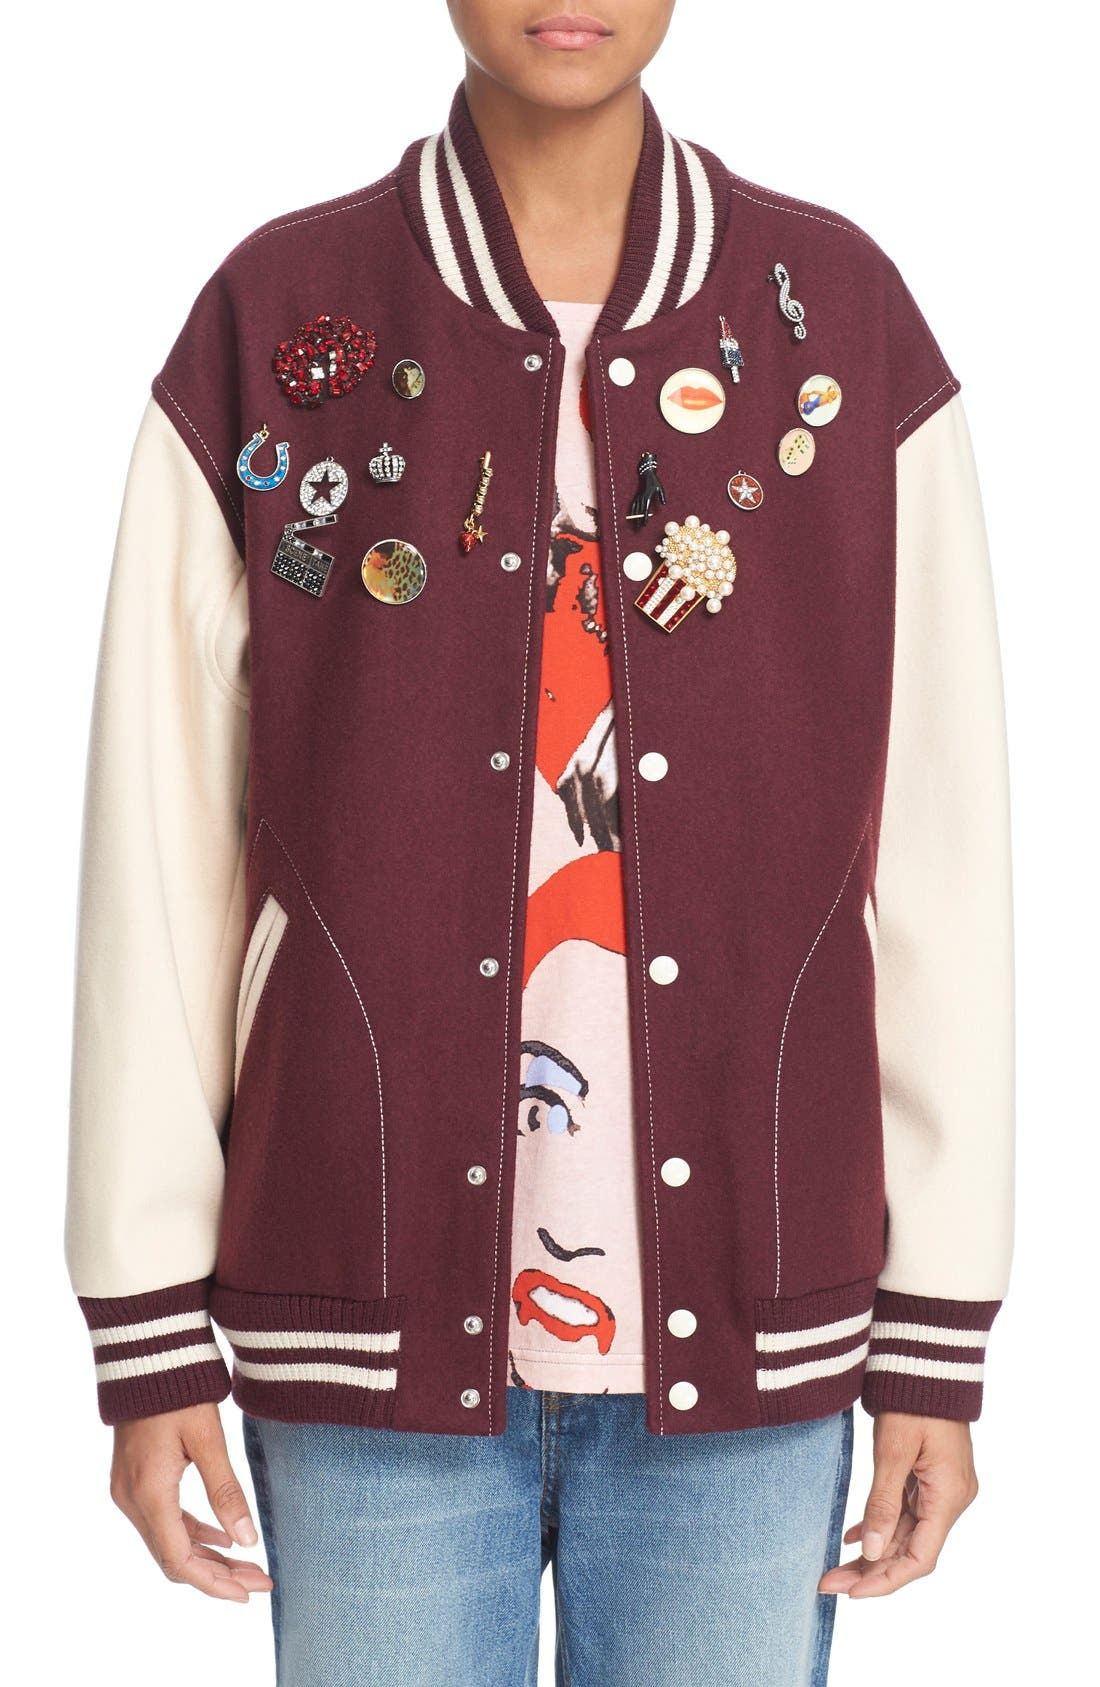 Alternate Image 1 Selected - MARC JACOBS Embellished Varsity Jacket